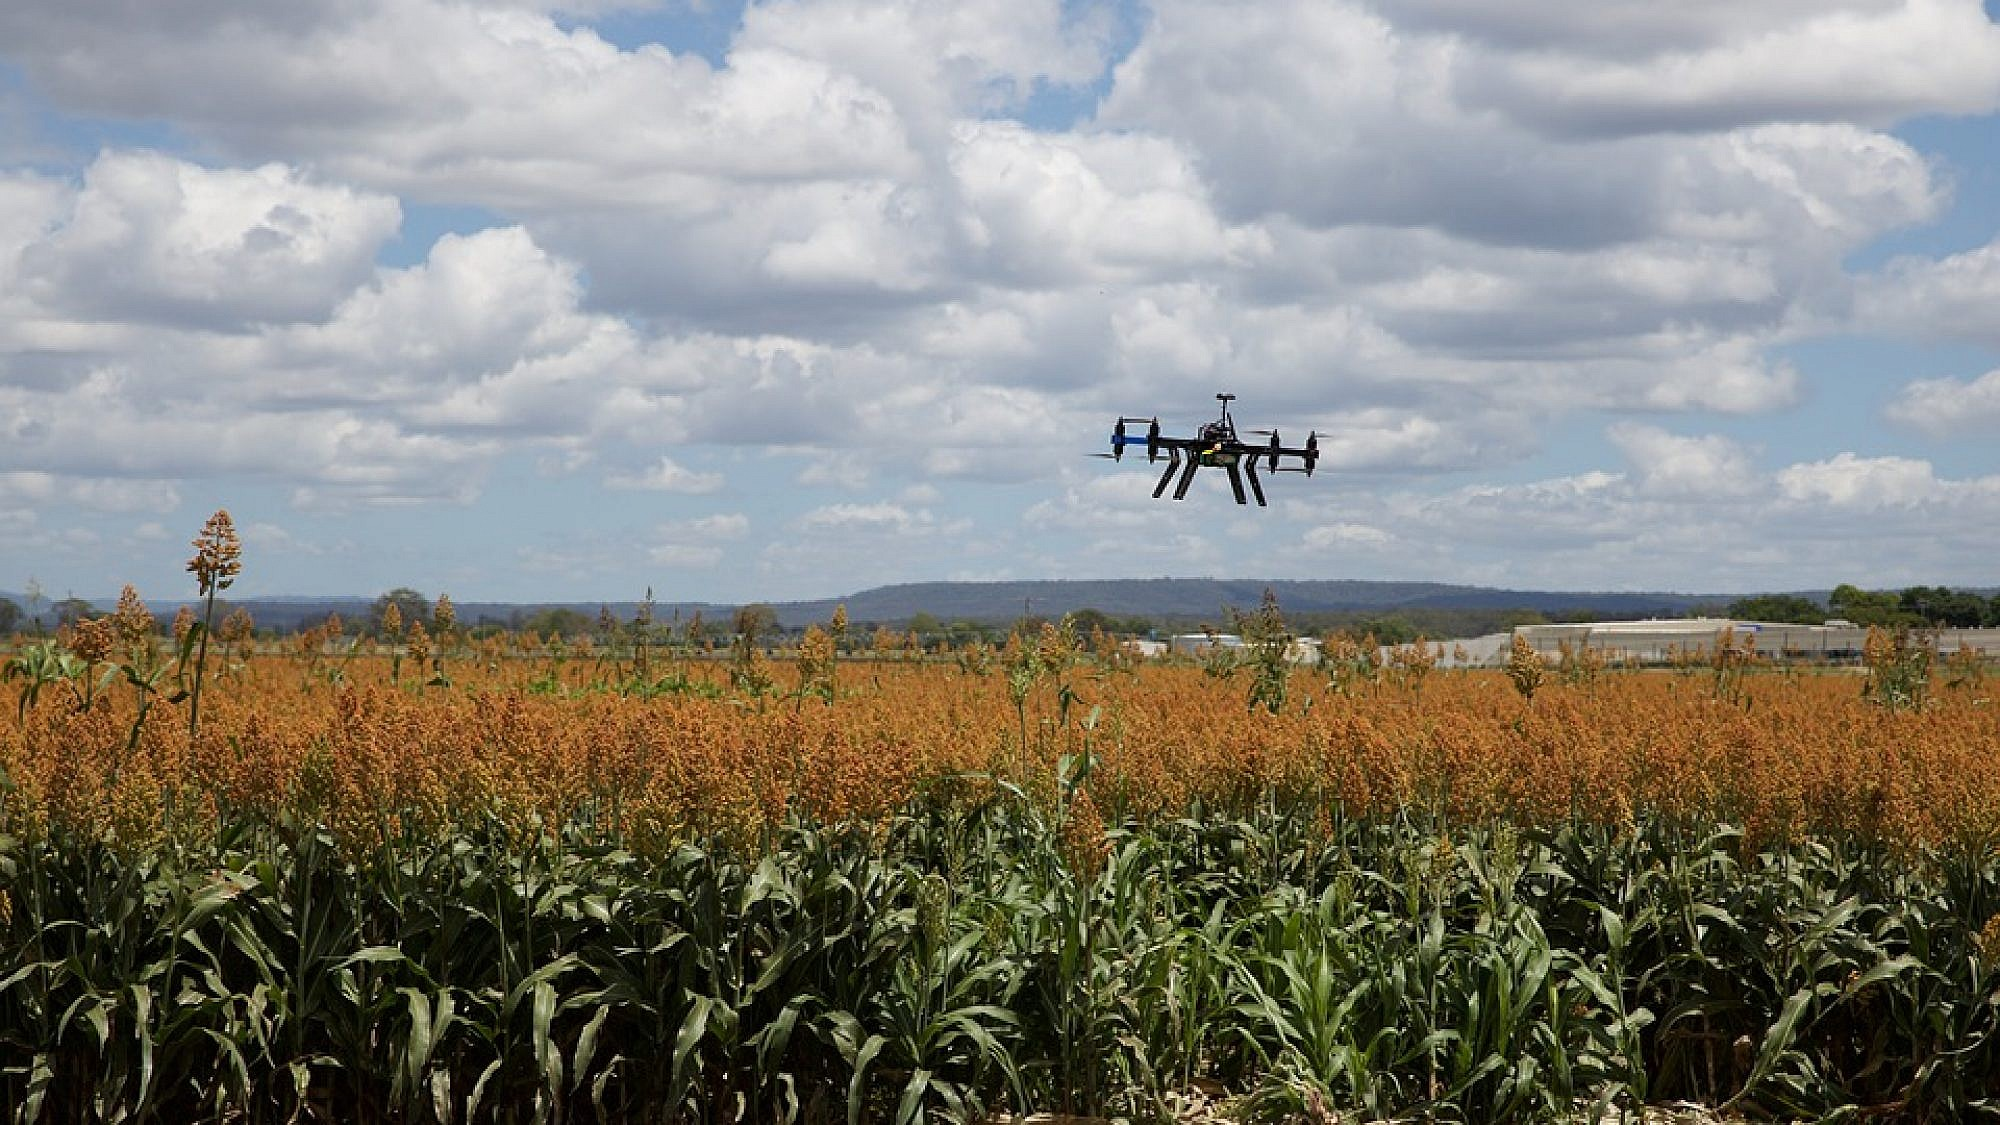 """Illustrative: A drone flying through corn fields highlighting """"agTech"""" or agricultural technology. Credit: Pixabay Creative Commons."""